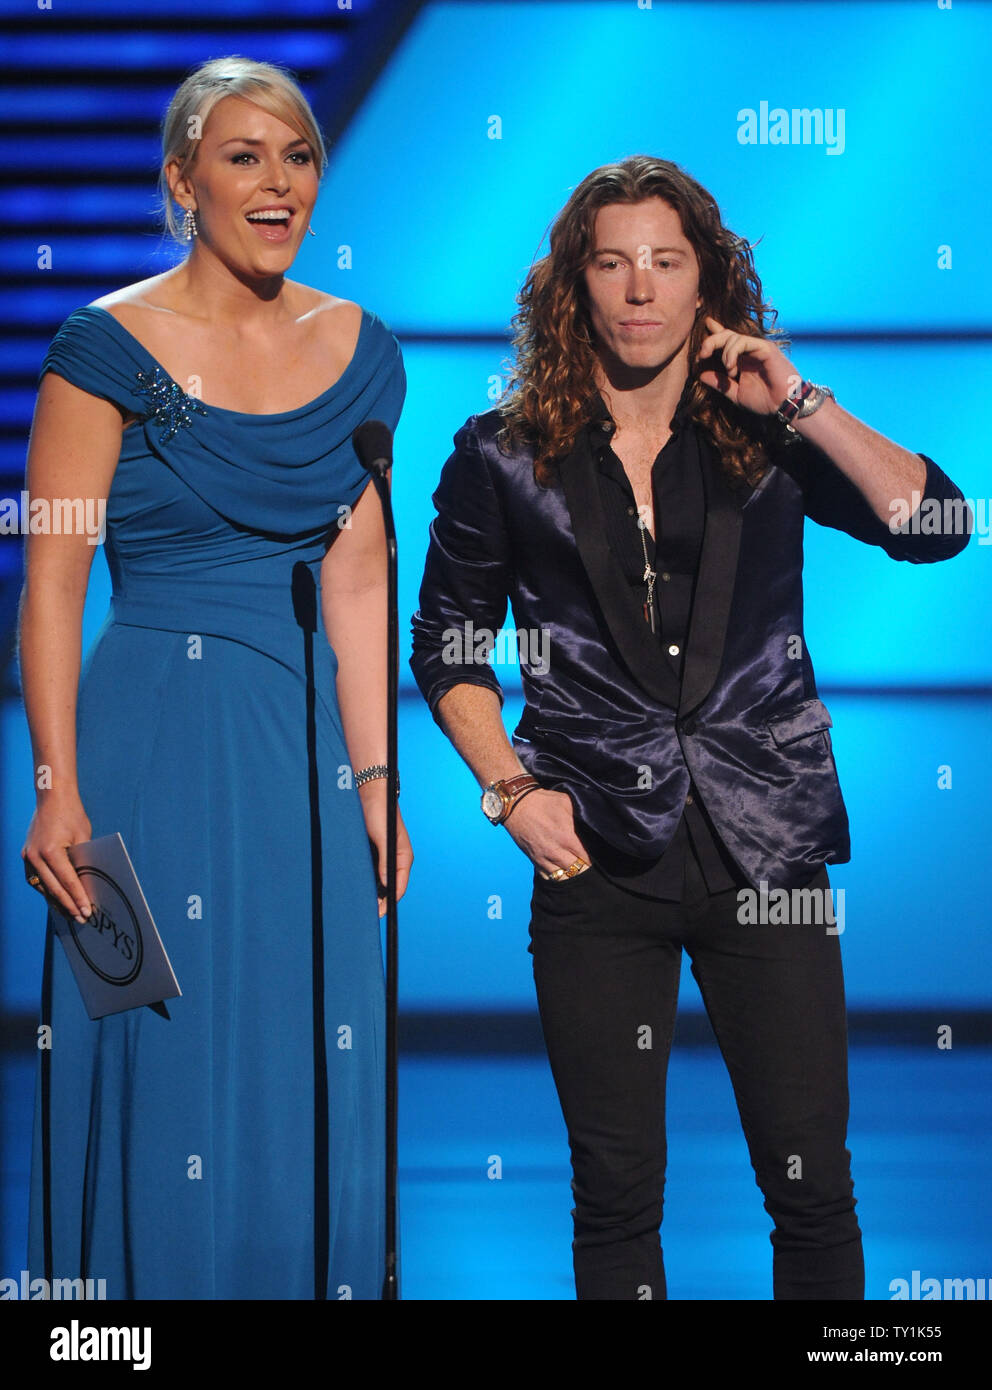 U.S. Winter Olympic gold medallists Shaun White (R) and Lindsey Vonn present an award at the 2010 ESPY Awards in Los Angeles on July 14, 2010.    UPI/Jim Ruymen - Stock Image